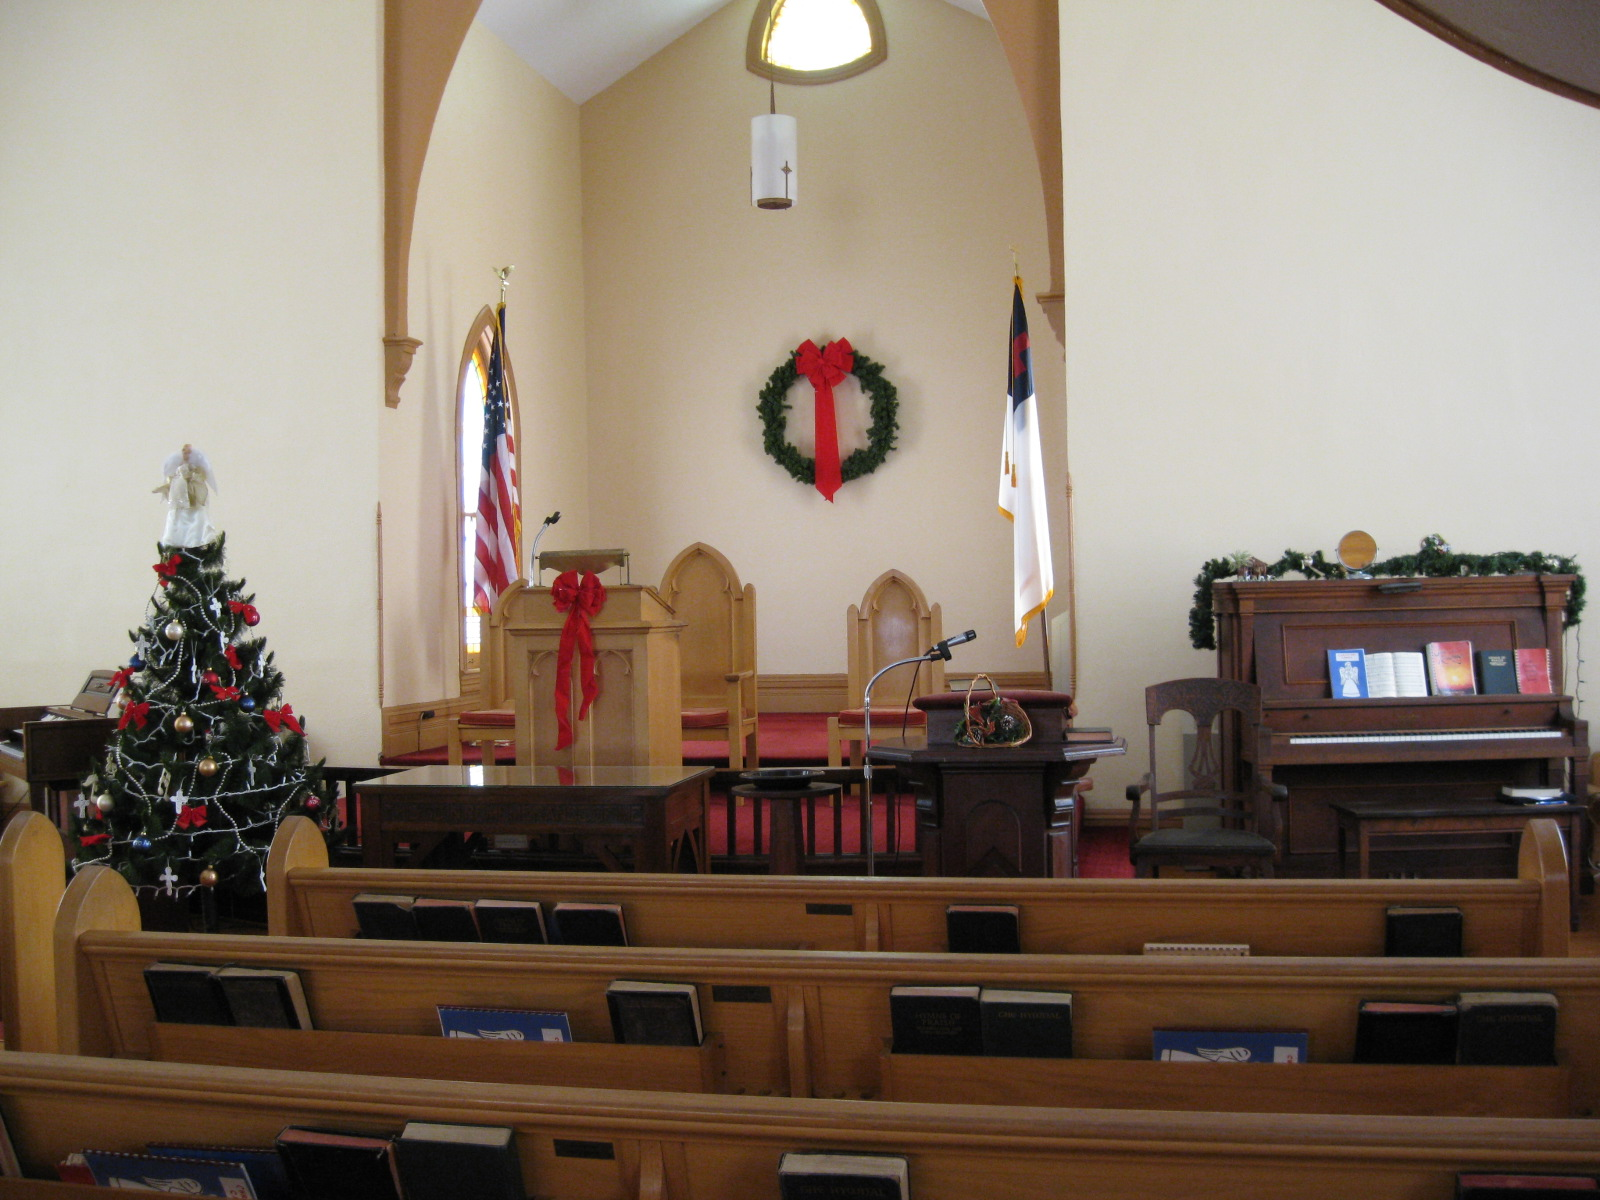 Christmas Sanctuary 2010 Decorations